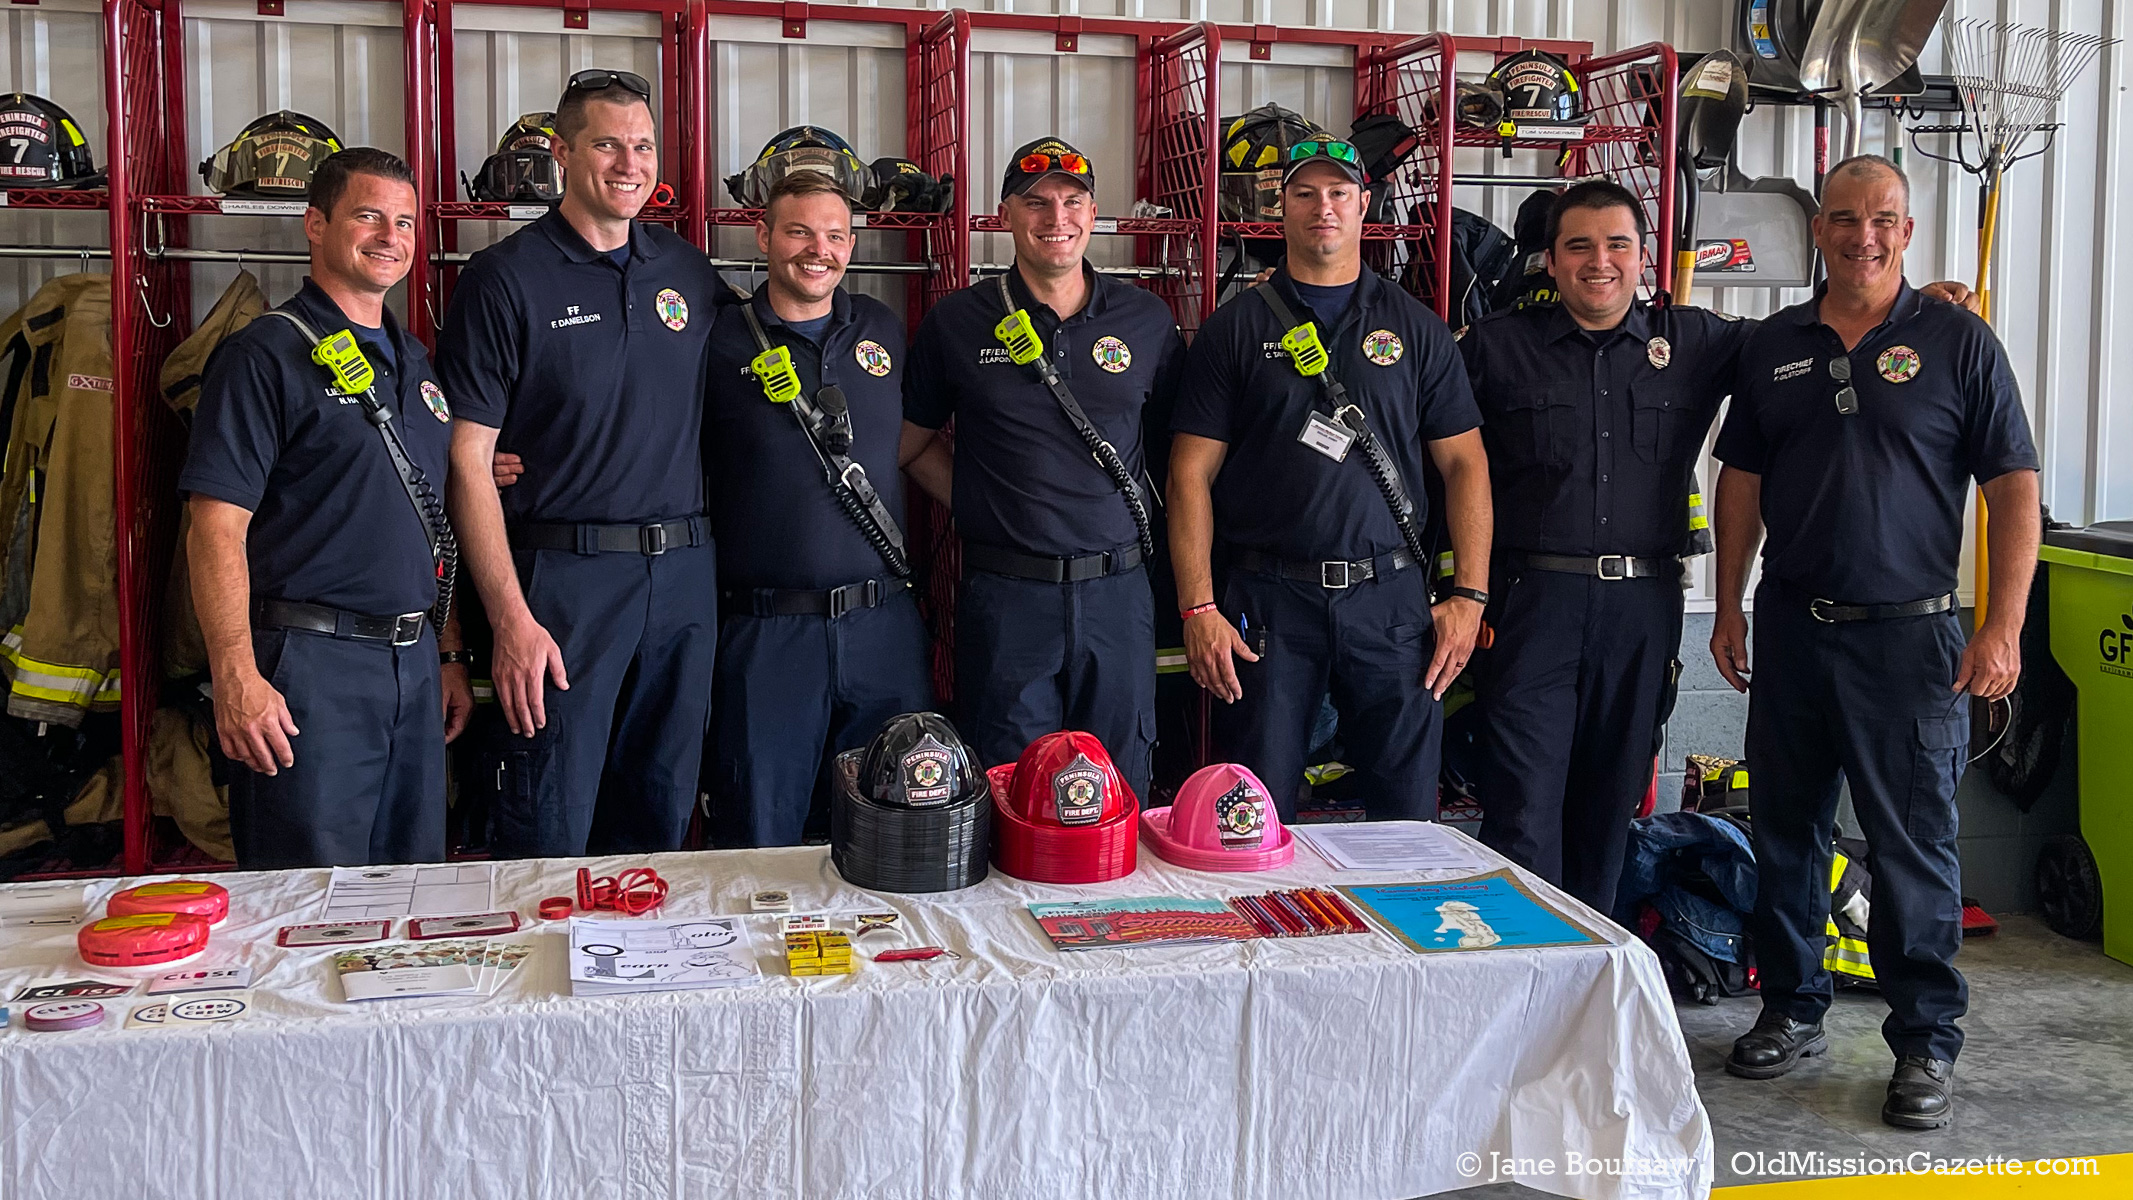 Peninsula Township Fire Department at the Open House for Fire Station 3; Aug. 15, 2021 | Jane Boursaw Photo